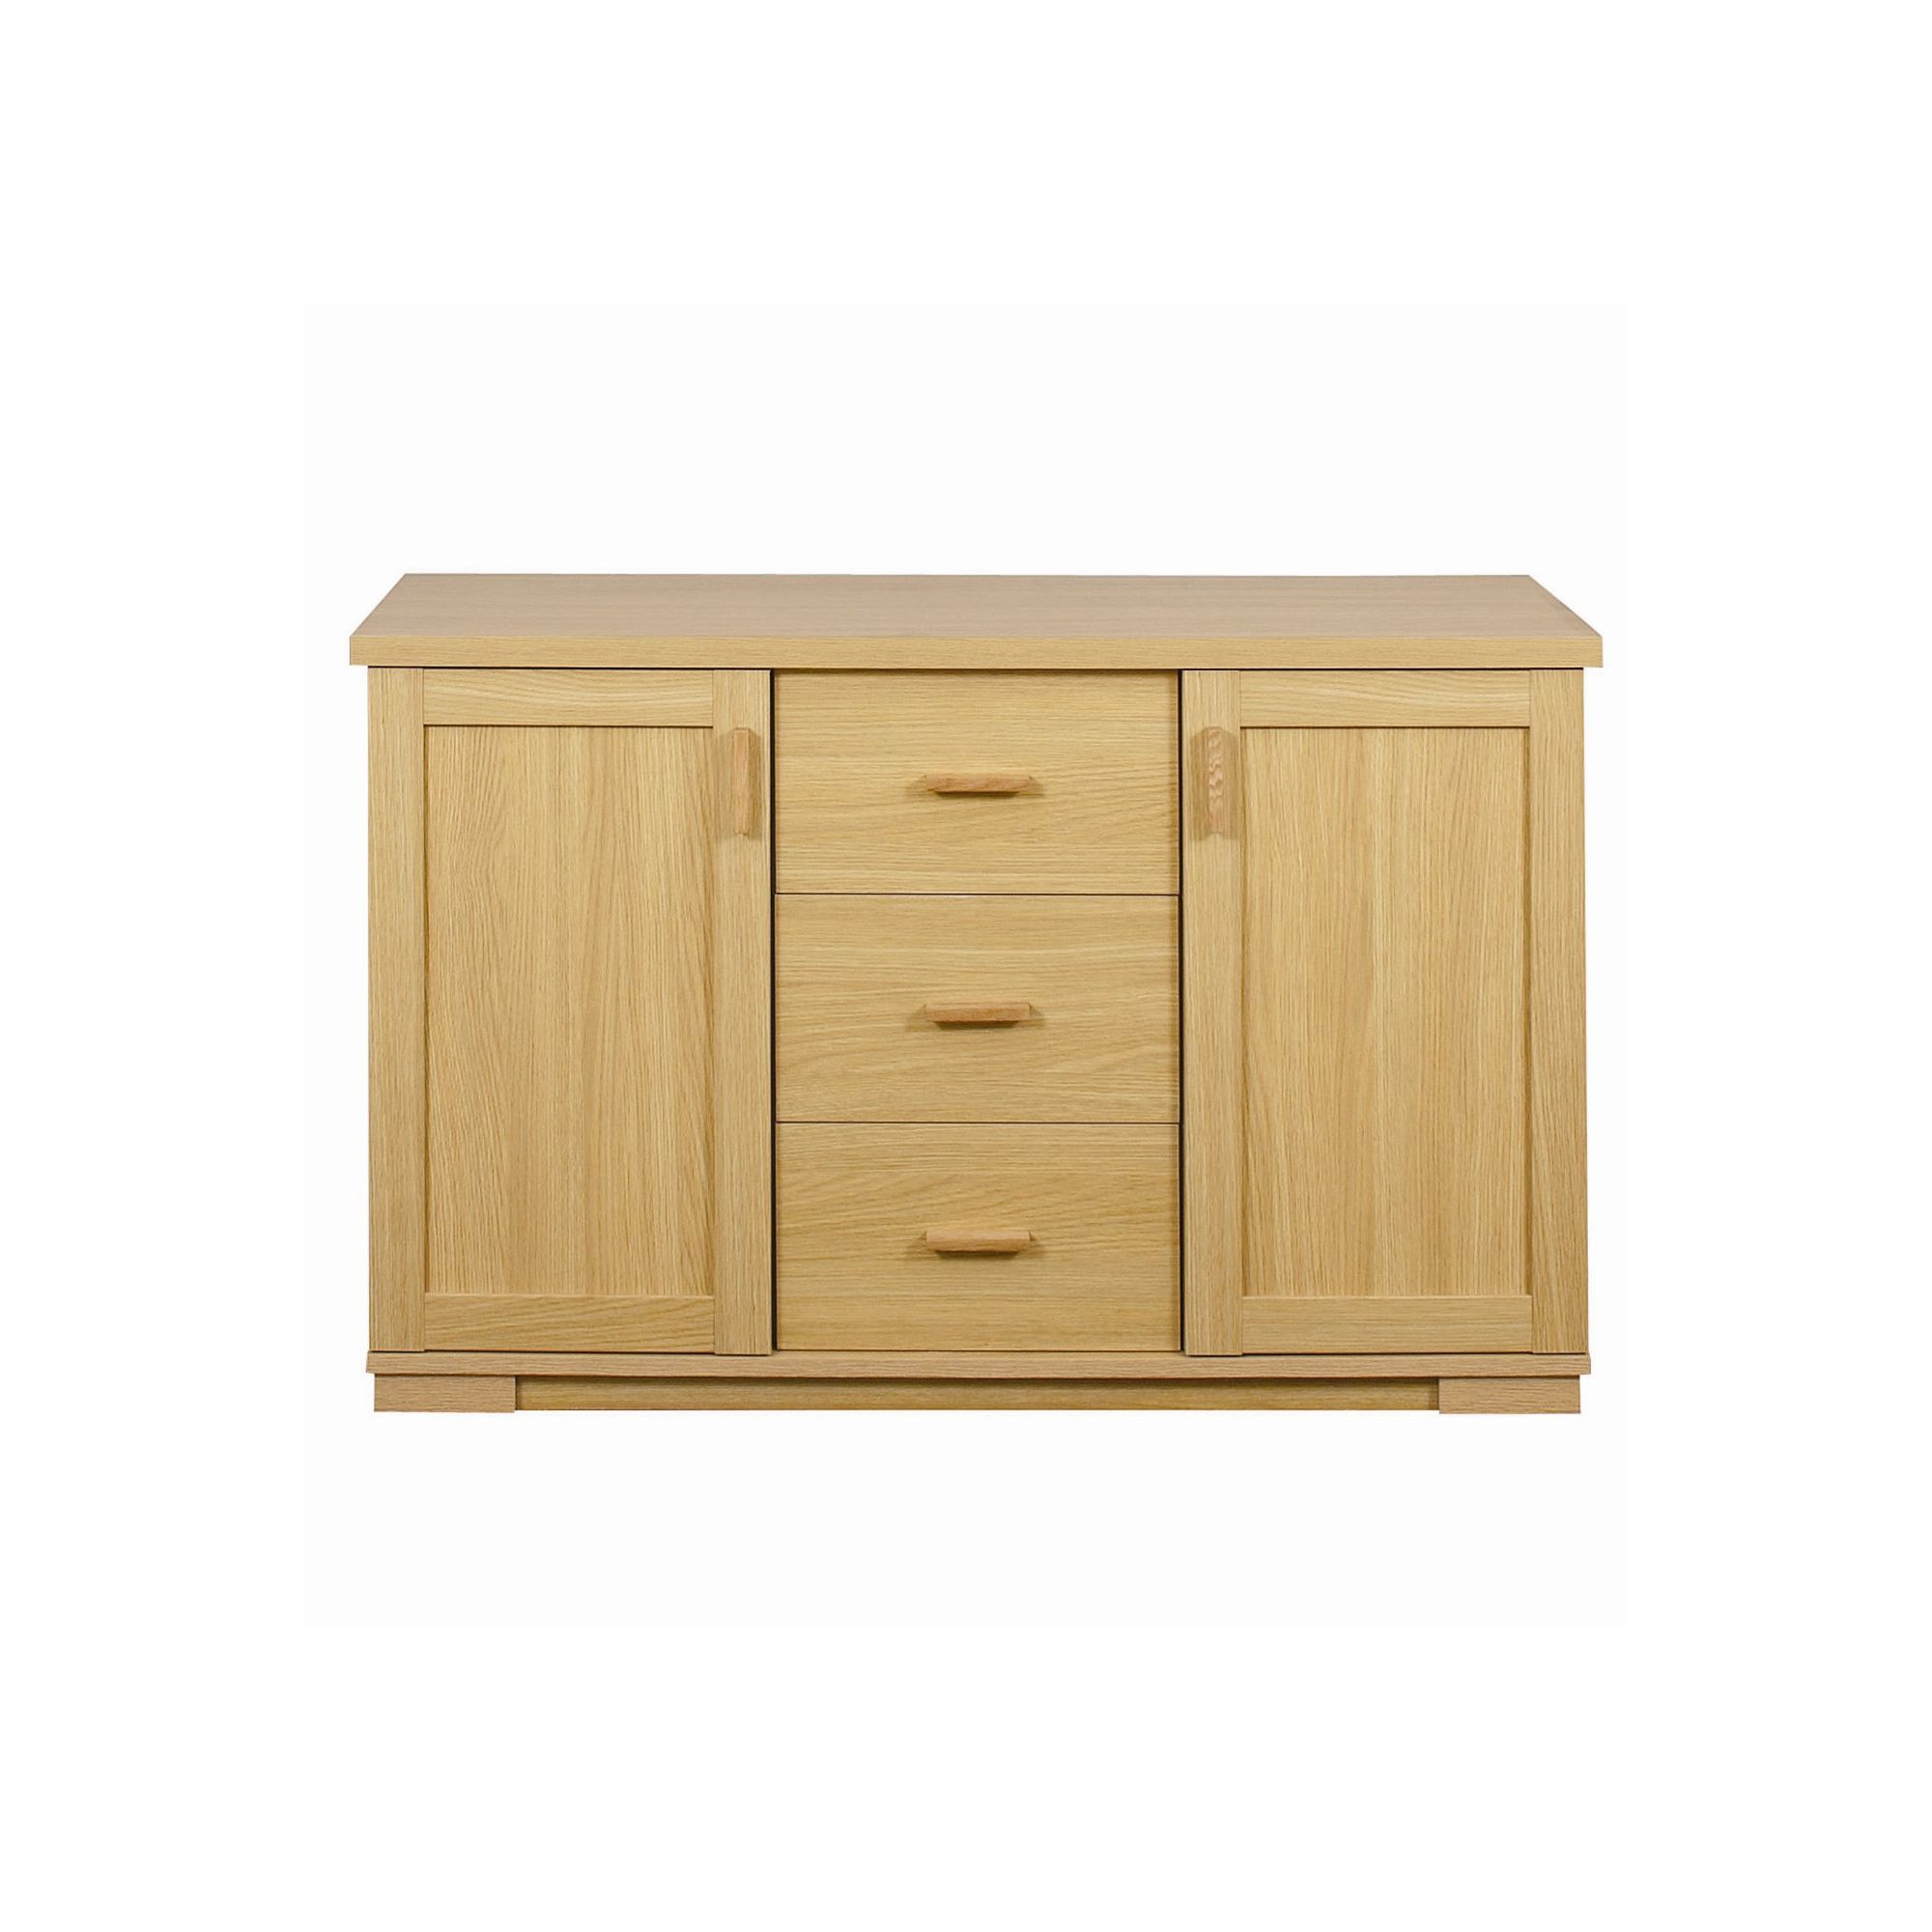 Caxton Huxley 2 Door / 3 Drawer Sideboard in Light Oak at Tesco Direct